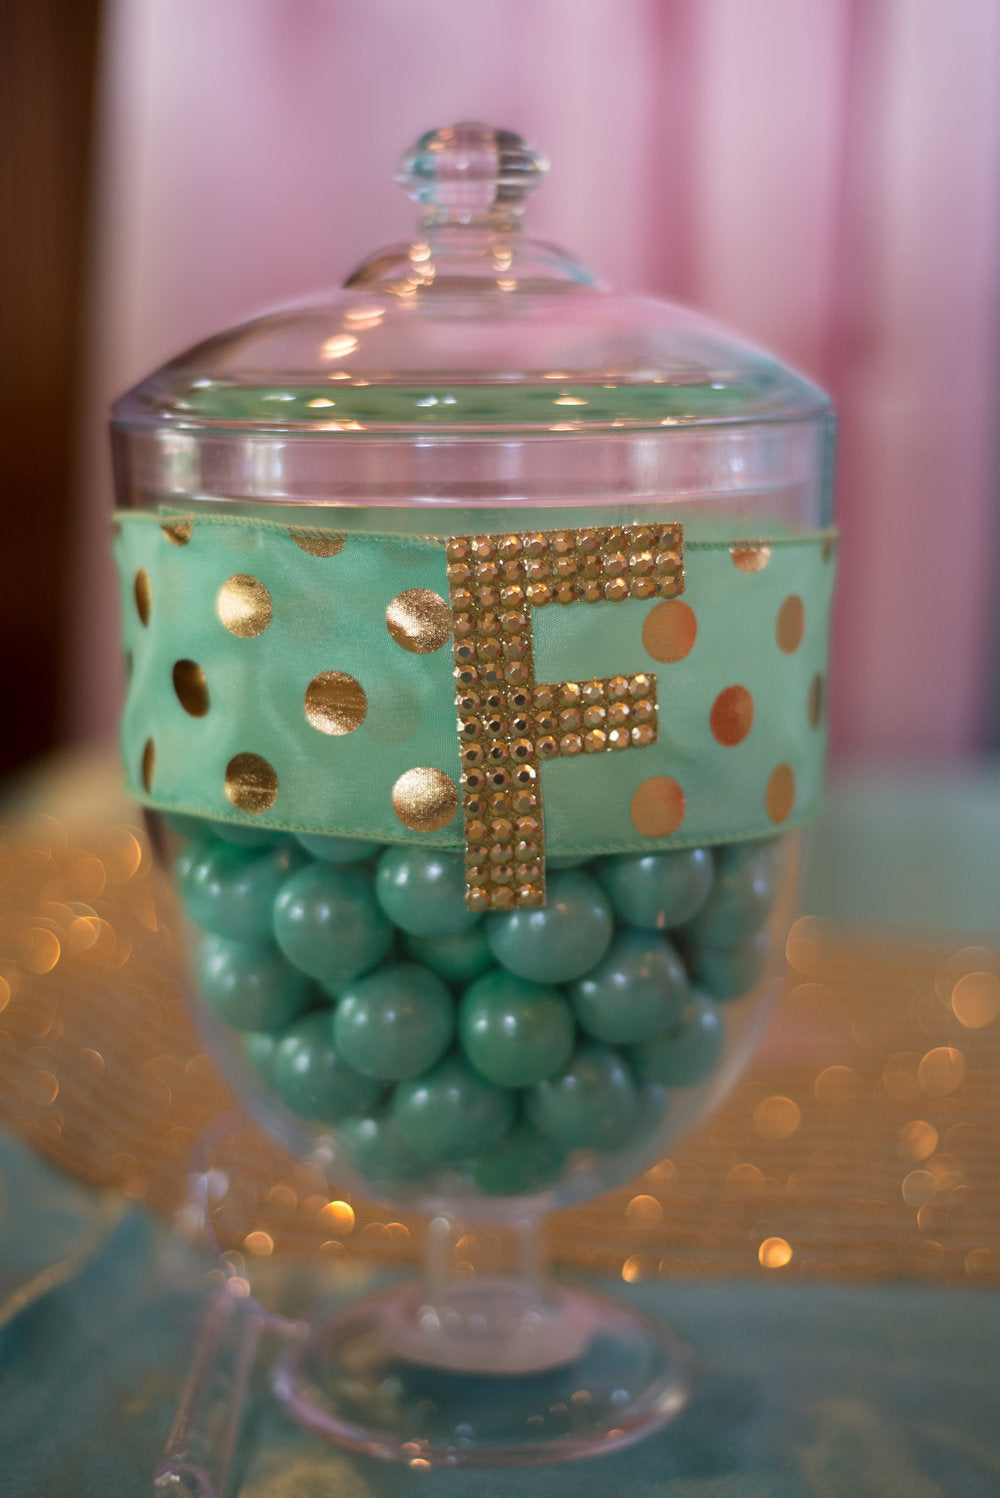 Decorated candy jar containing teal candies